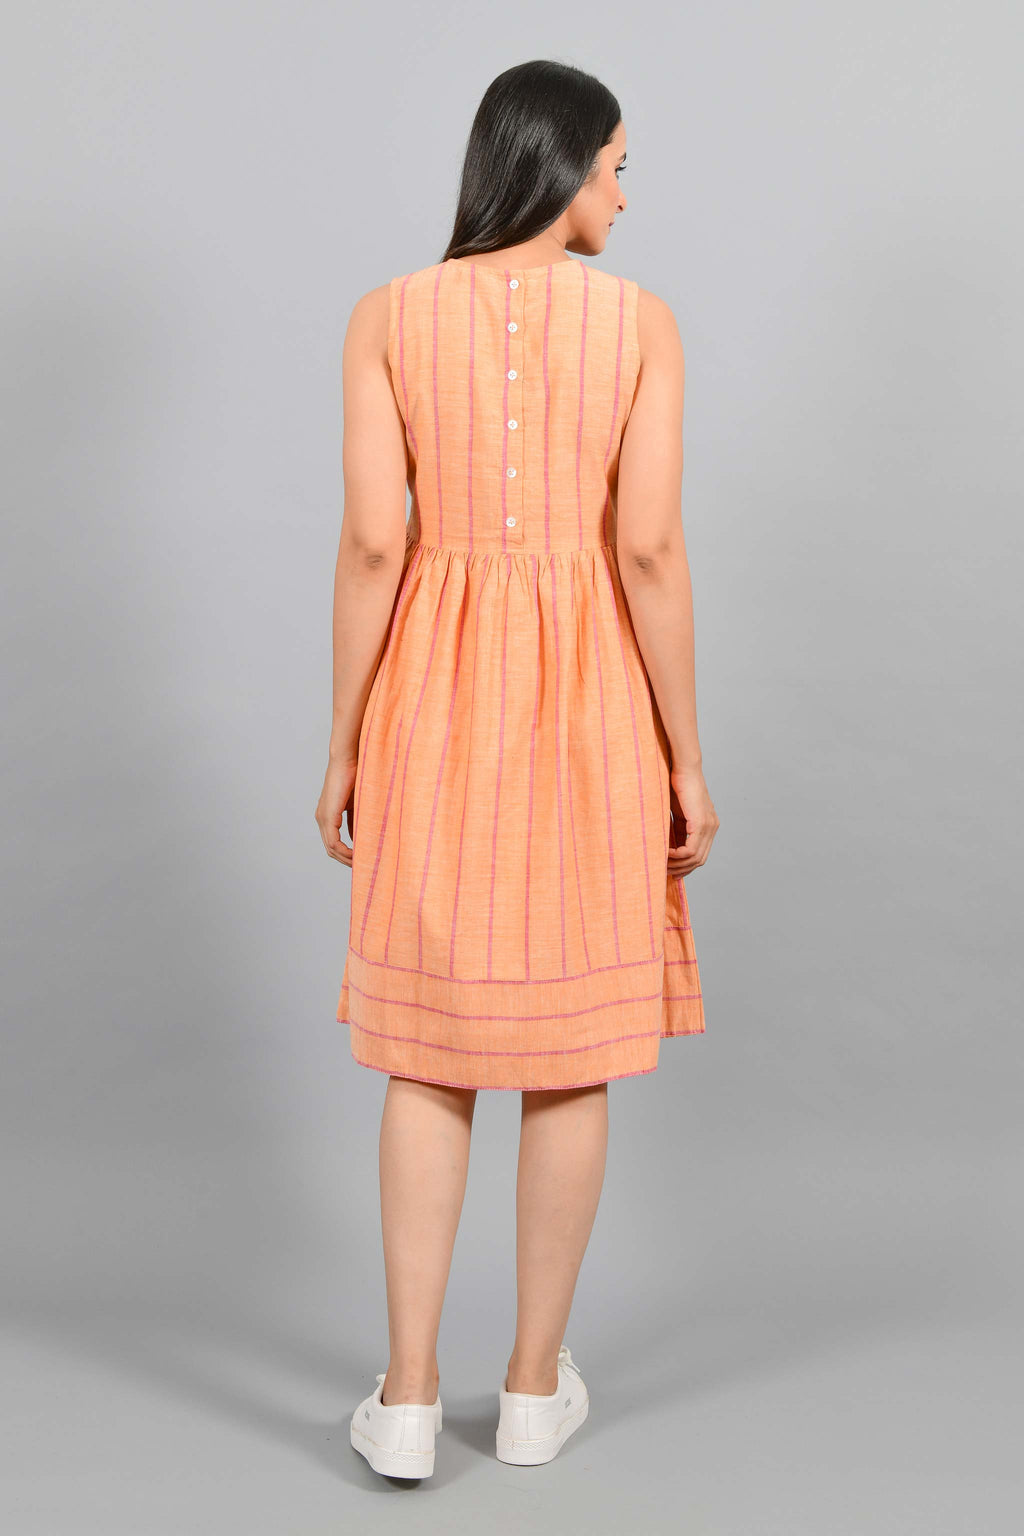 Back pose of an Indian female womenswear fashion model in a orange chambray handspun and handwoven khadi cotton with red stripes by Cotton Rack. The dress has gathers at waist. and the stripes are arranged in attractive manner.